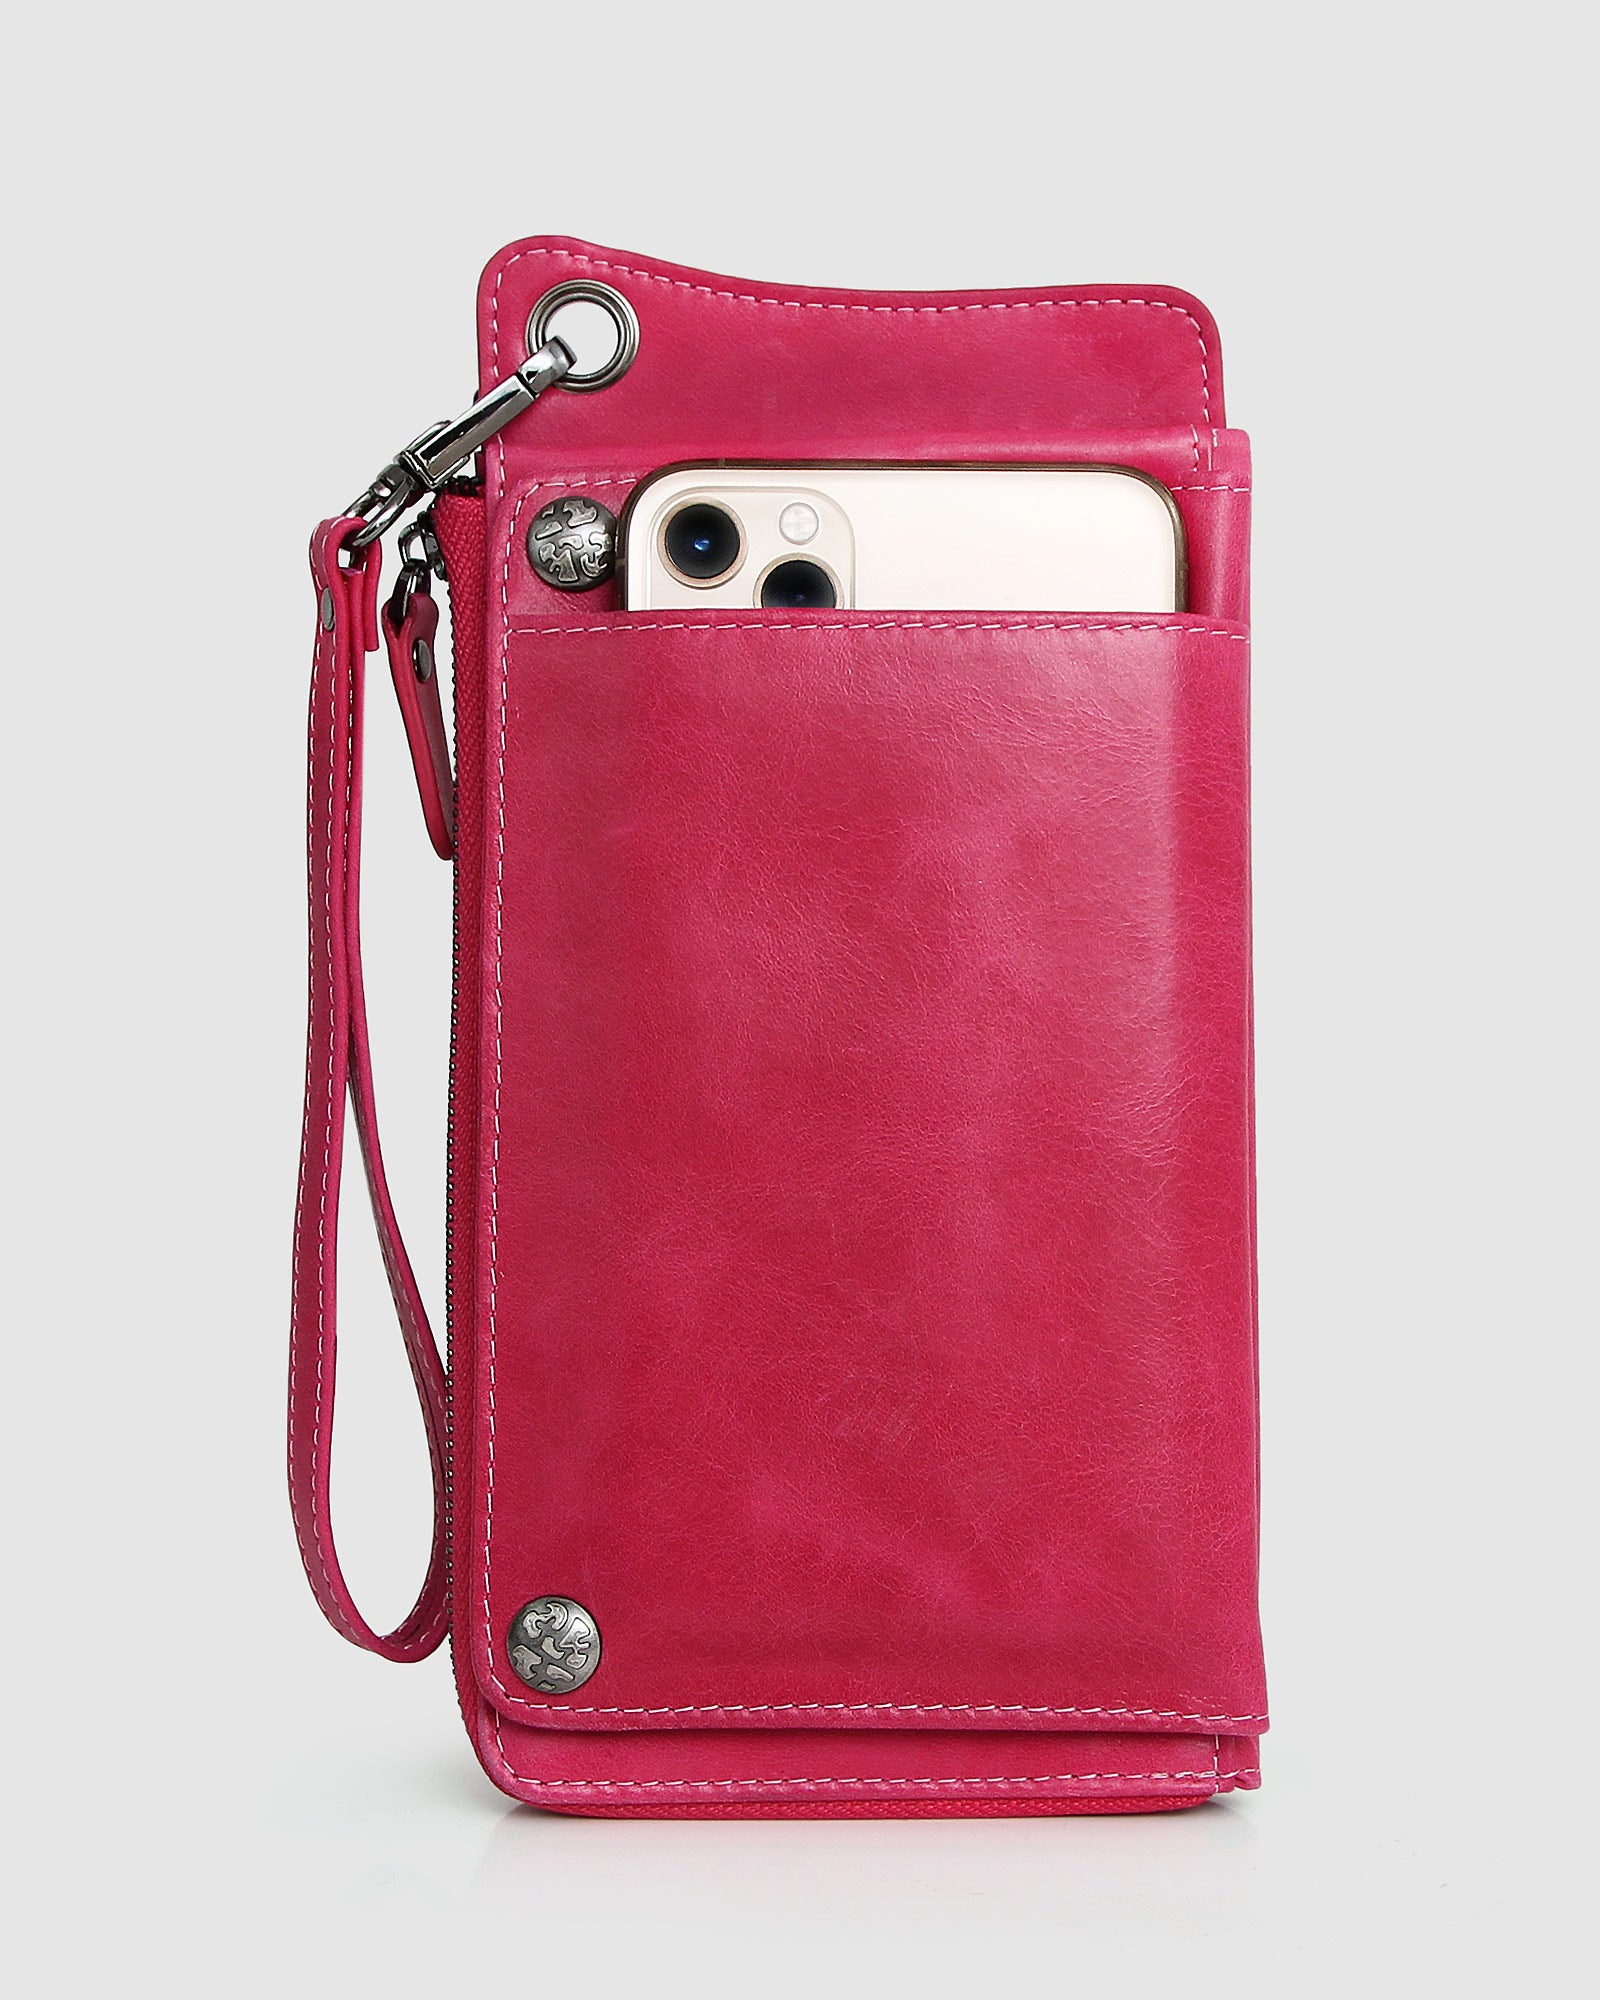 Penelope Leather Wallet - Hot Pink